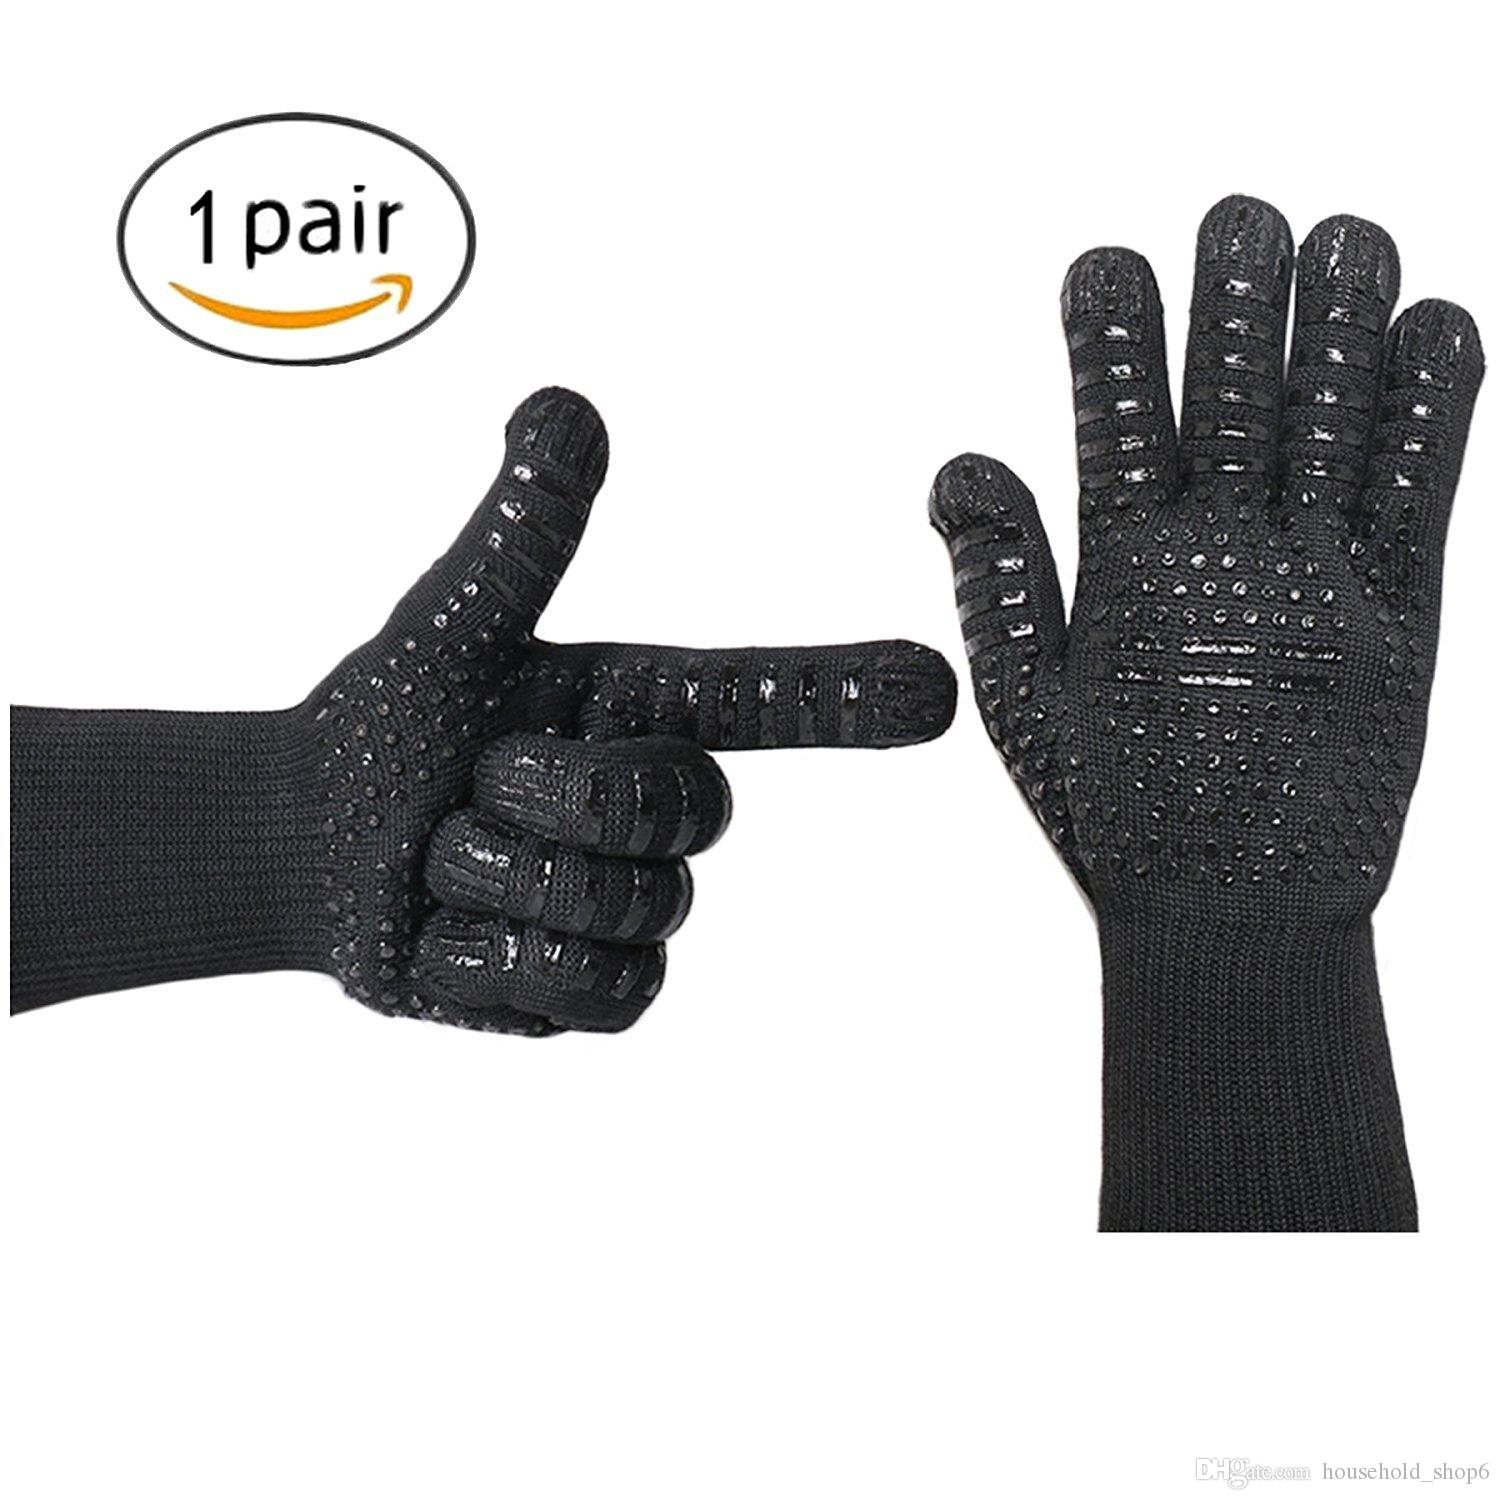 2018 New Multifunctional Heat Resistant Gloves Long Forearm ...